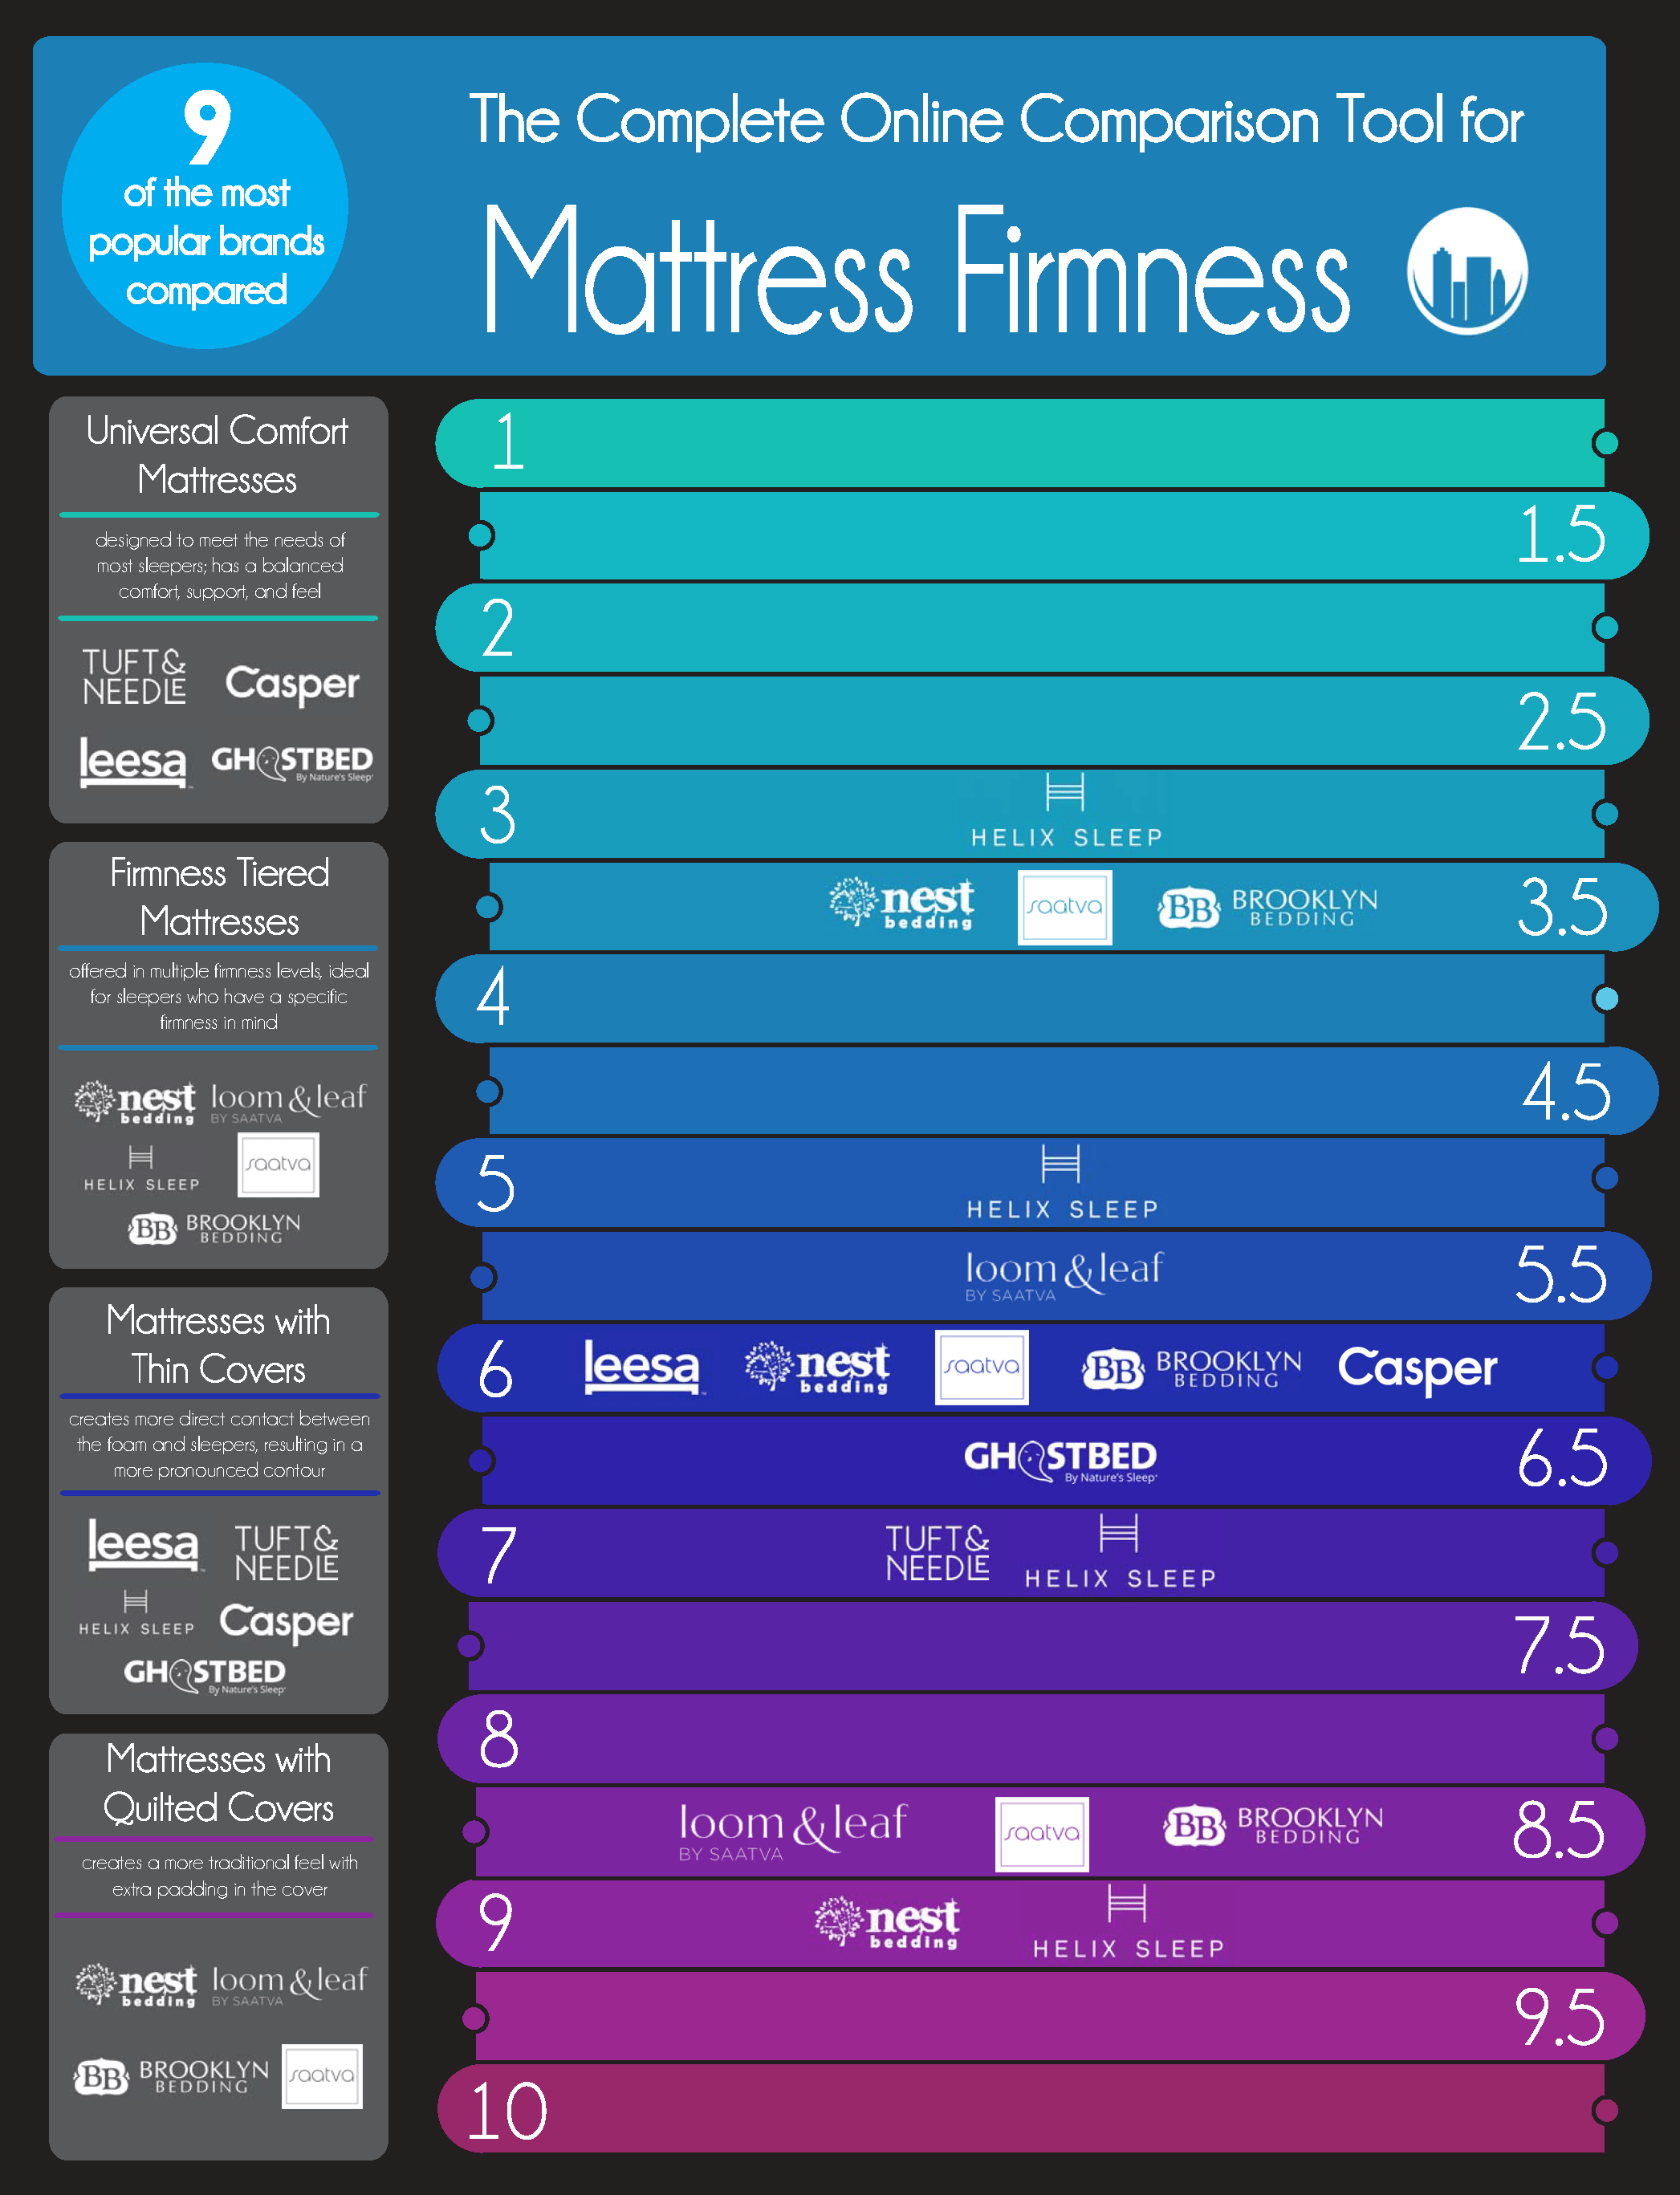 9 Online Mattress Firmnesses Compared Infographic